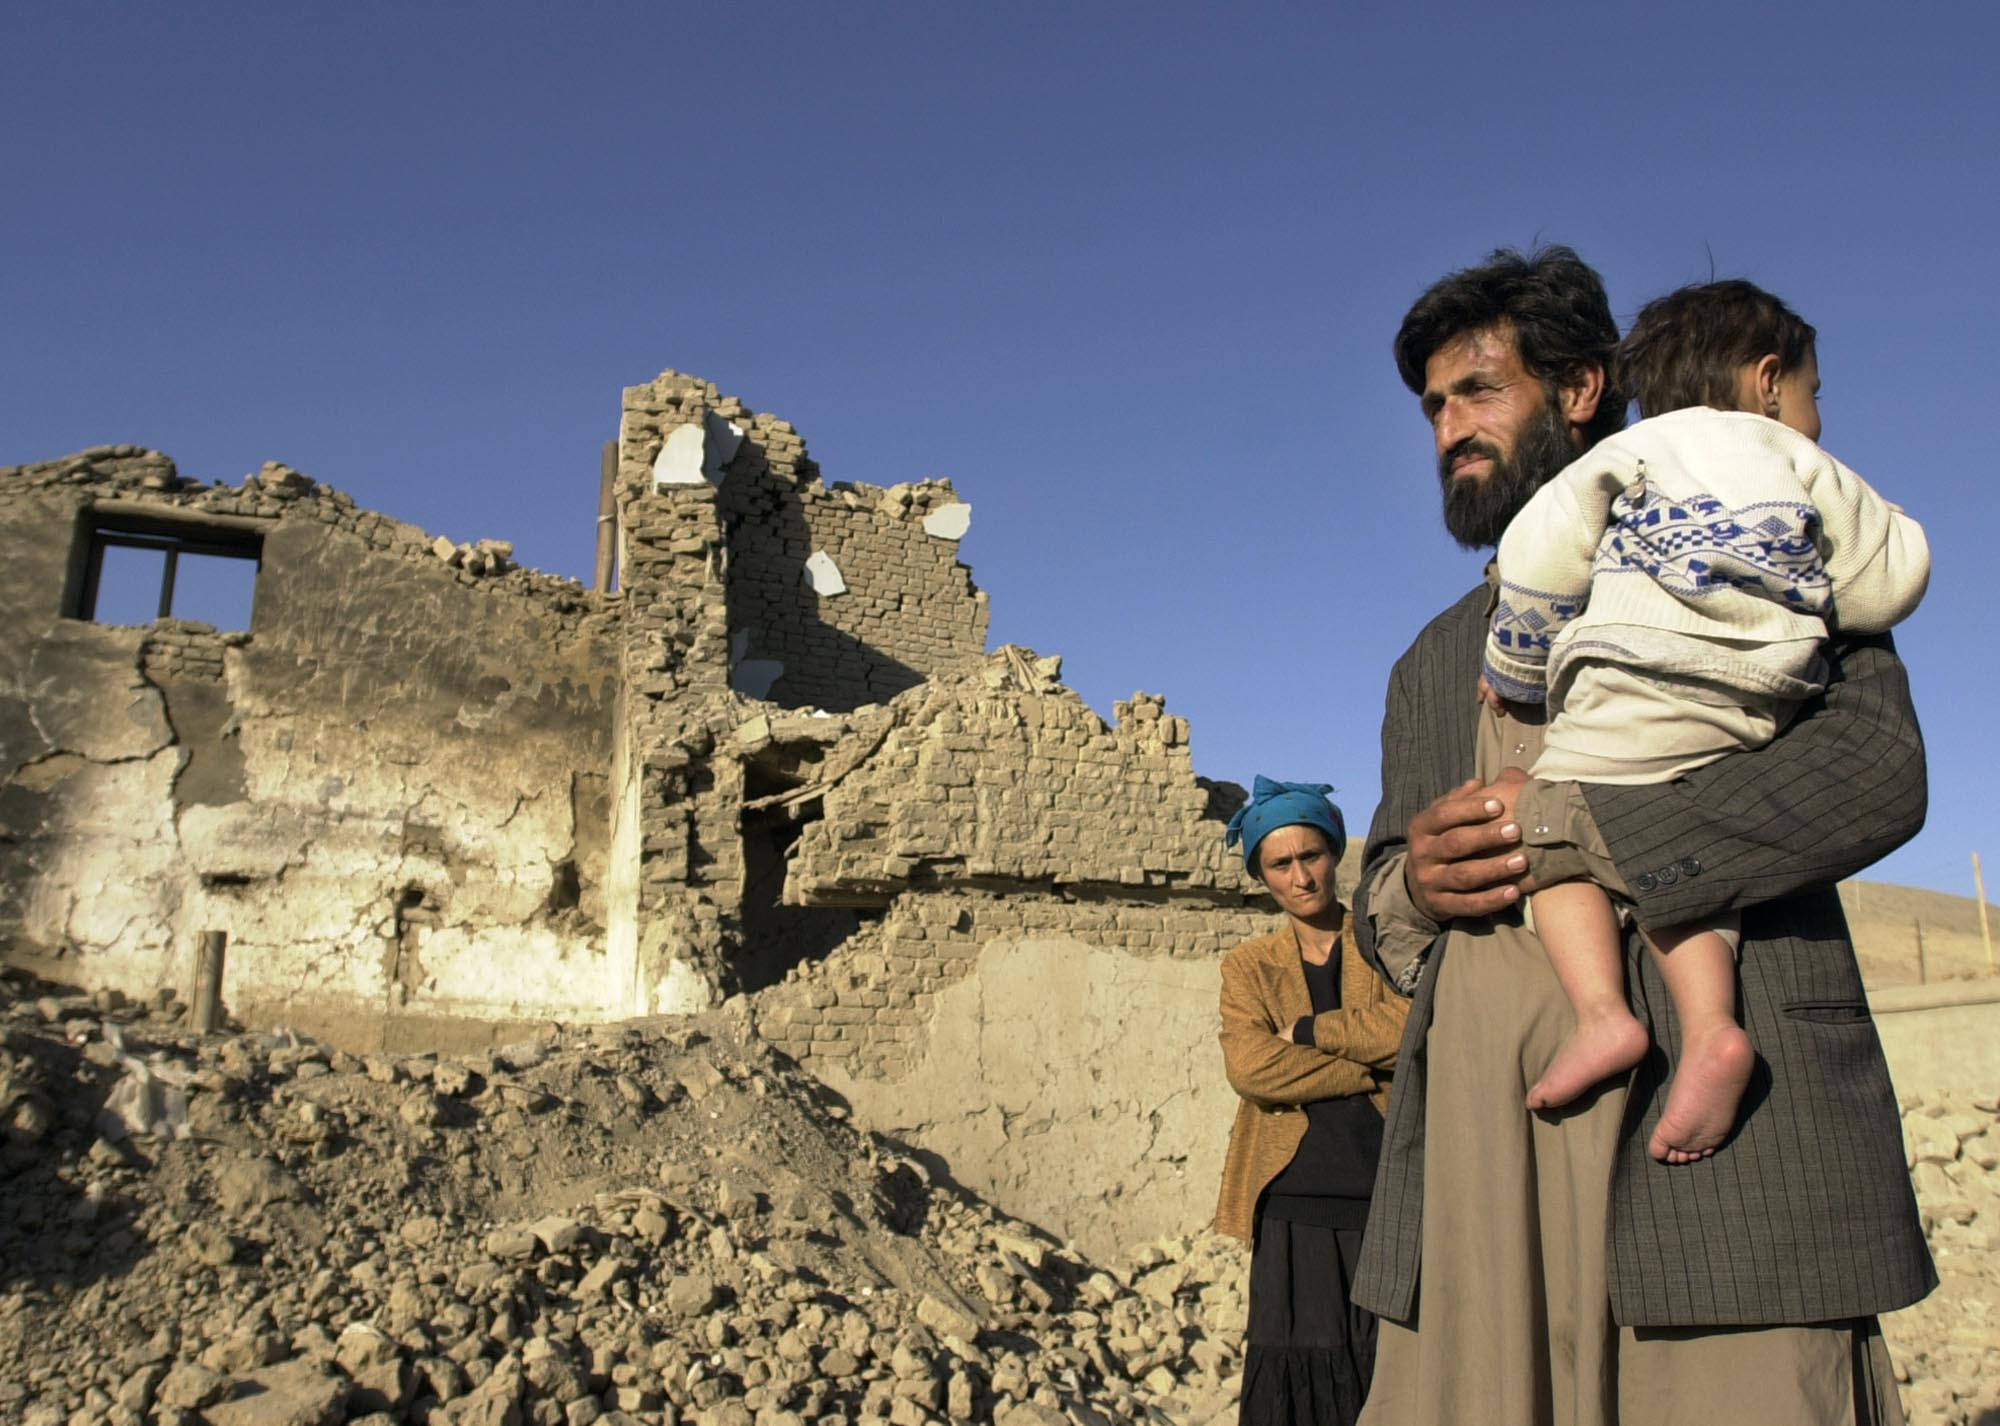 ORG XMIT: NY925 FILE - In this Tuesday, Nov. 20, 2001 file photo, Mohammed Sulemon stands with his wife Rona and their daughter Kanite in front of their home in Kabul, Afghanistan, which was bombed in the U.S. attacks. The family, which moved to a room in the back of the damaged house, says the bomb was intended for a Taliban military target near their home. No one was injured in this bombing. (AP Photo/Laura Rauch)